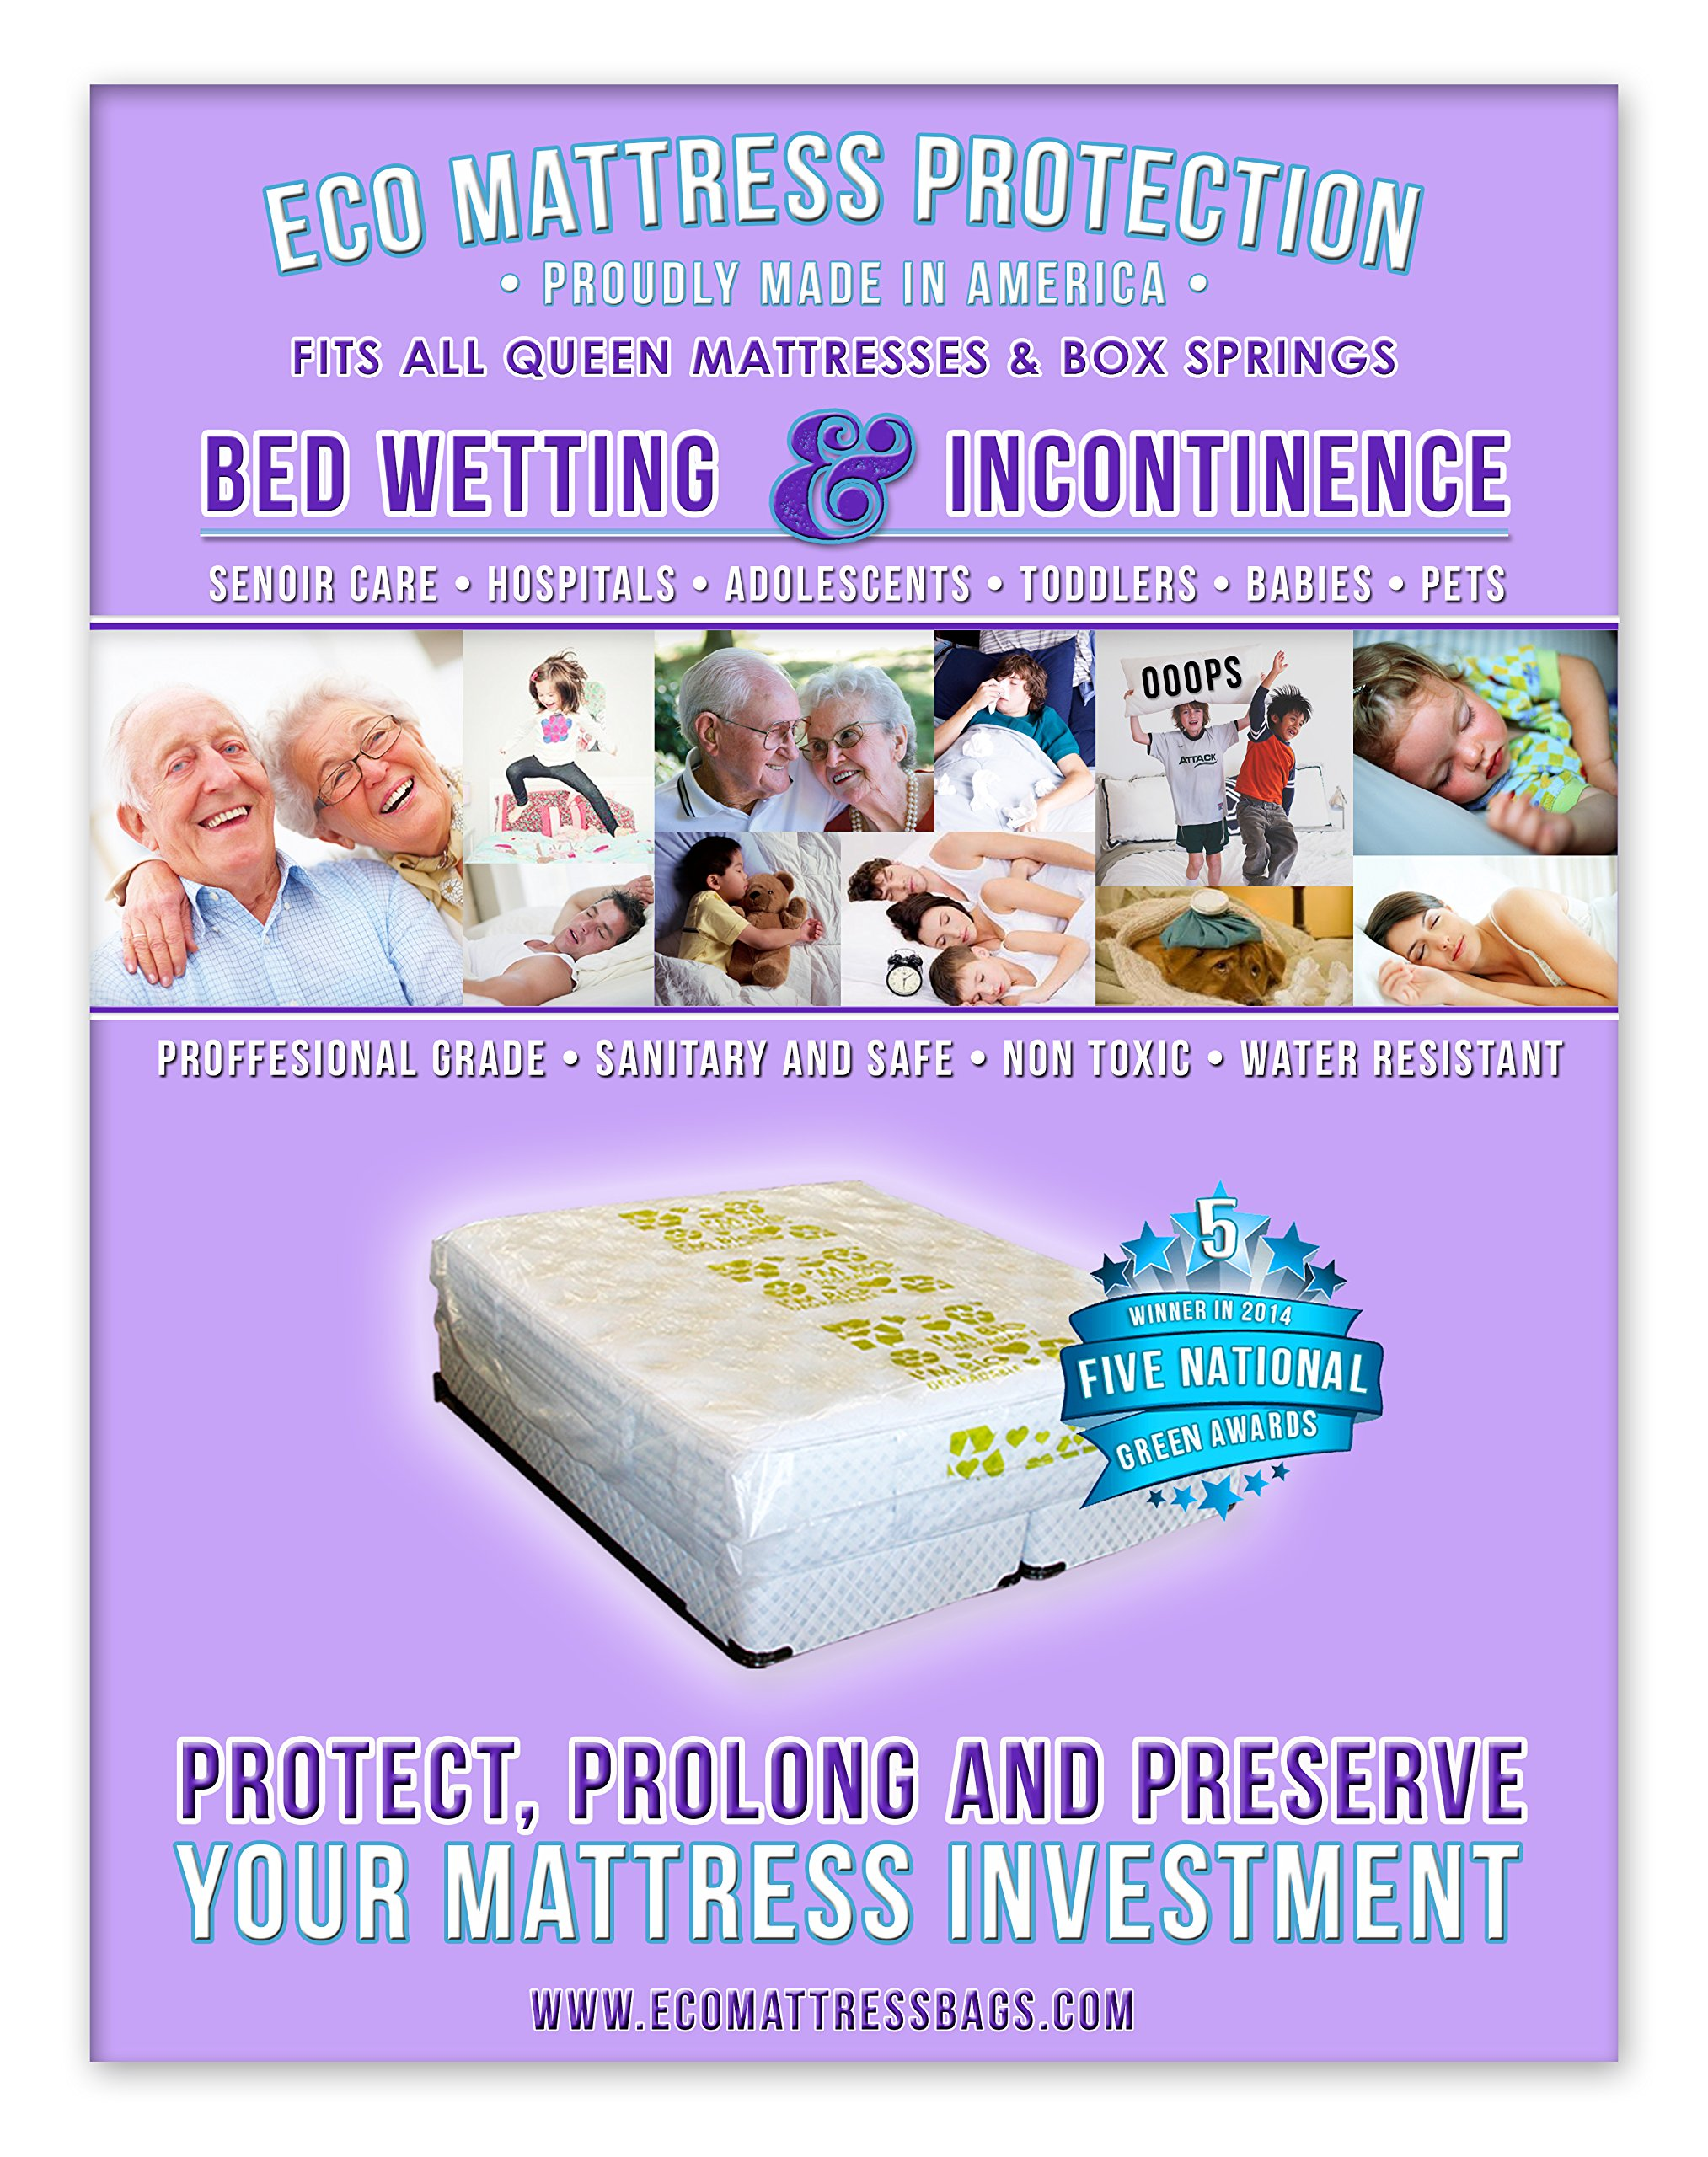 1 Queen Size Mattress Protector Designed for Bed Wetting and Incontinence. Fits All Queen and Full Size Mattresses. Compatible with All Pillow Tops and Box Springs. Winner of 5 National Green Awards in 2014. Professional Hospital/ Medical Grade, 3 Mil, He